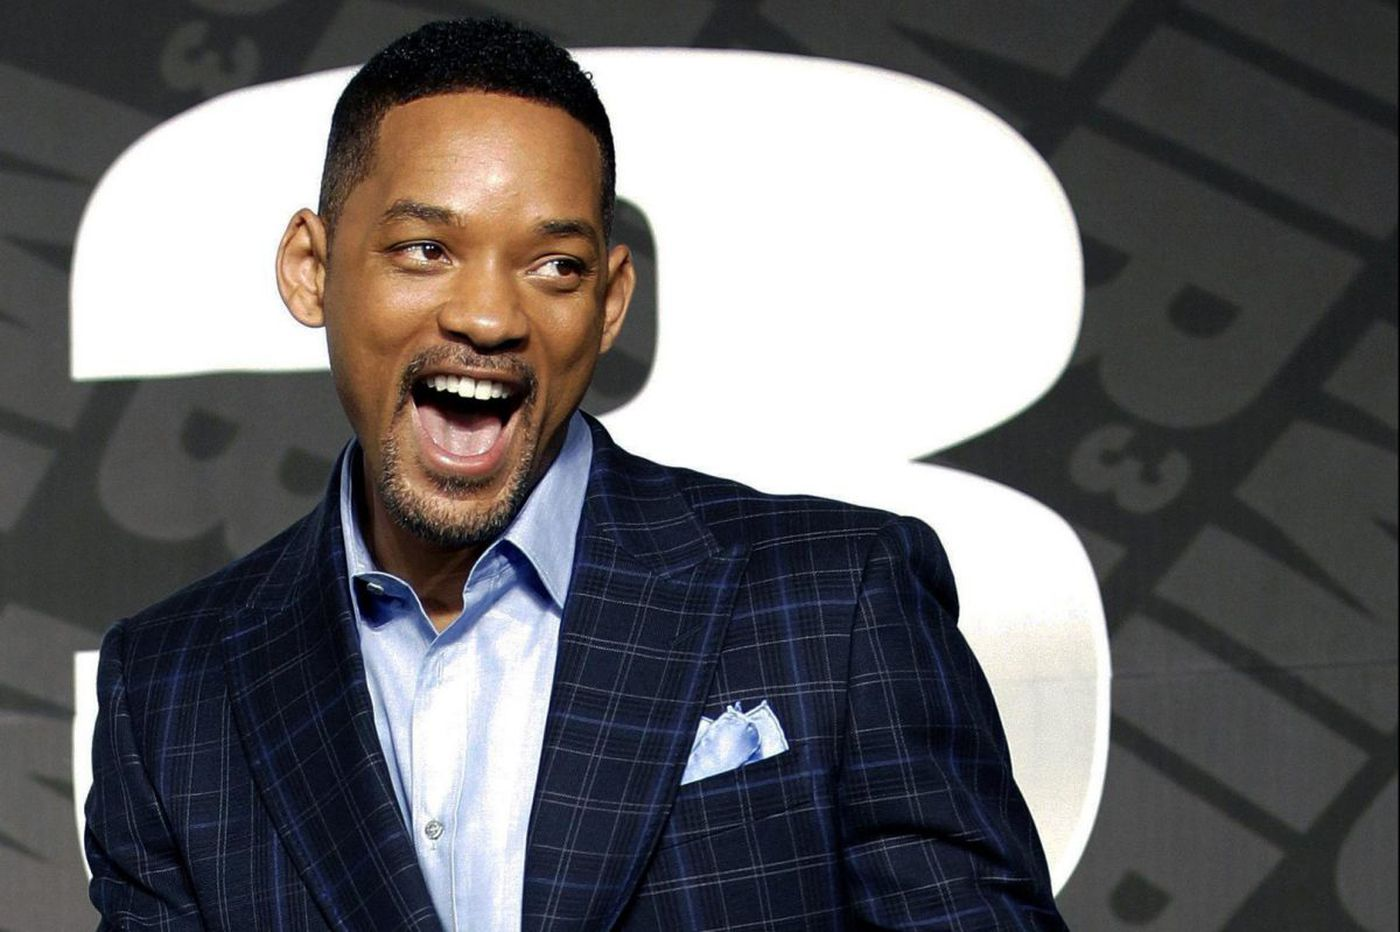 Will Smith recounts why IRS trouble led to his becoming the 'Fresh Prince'